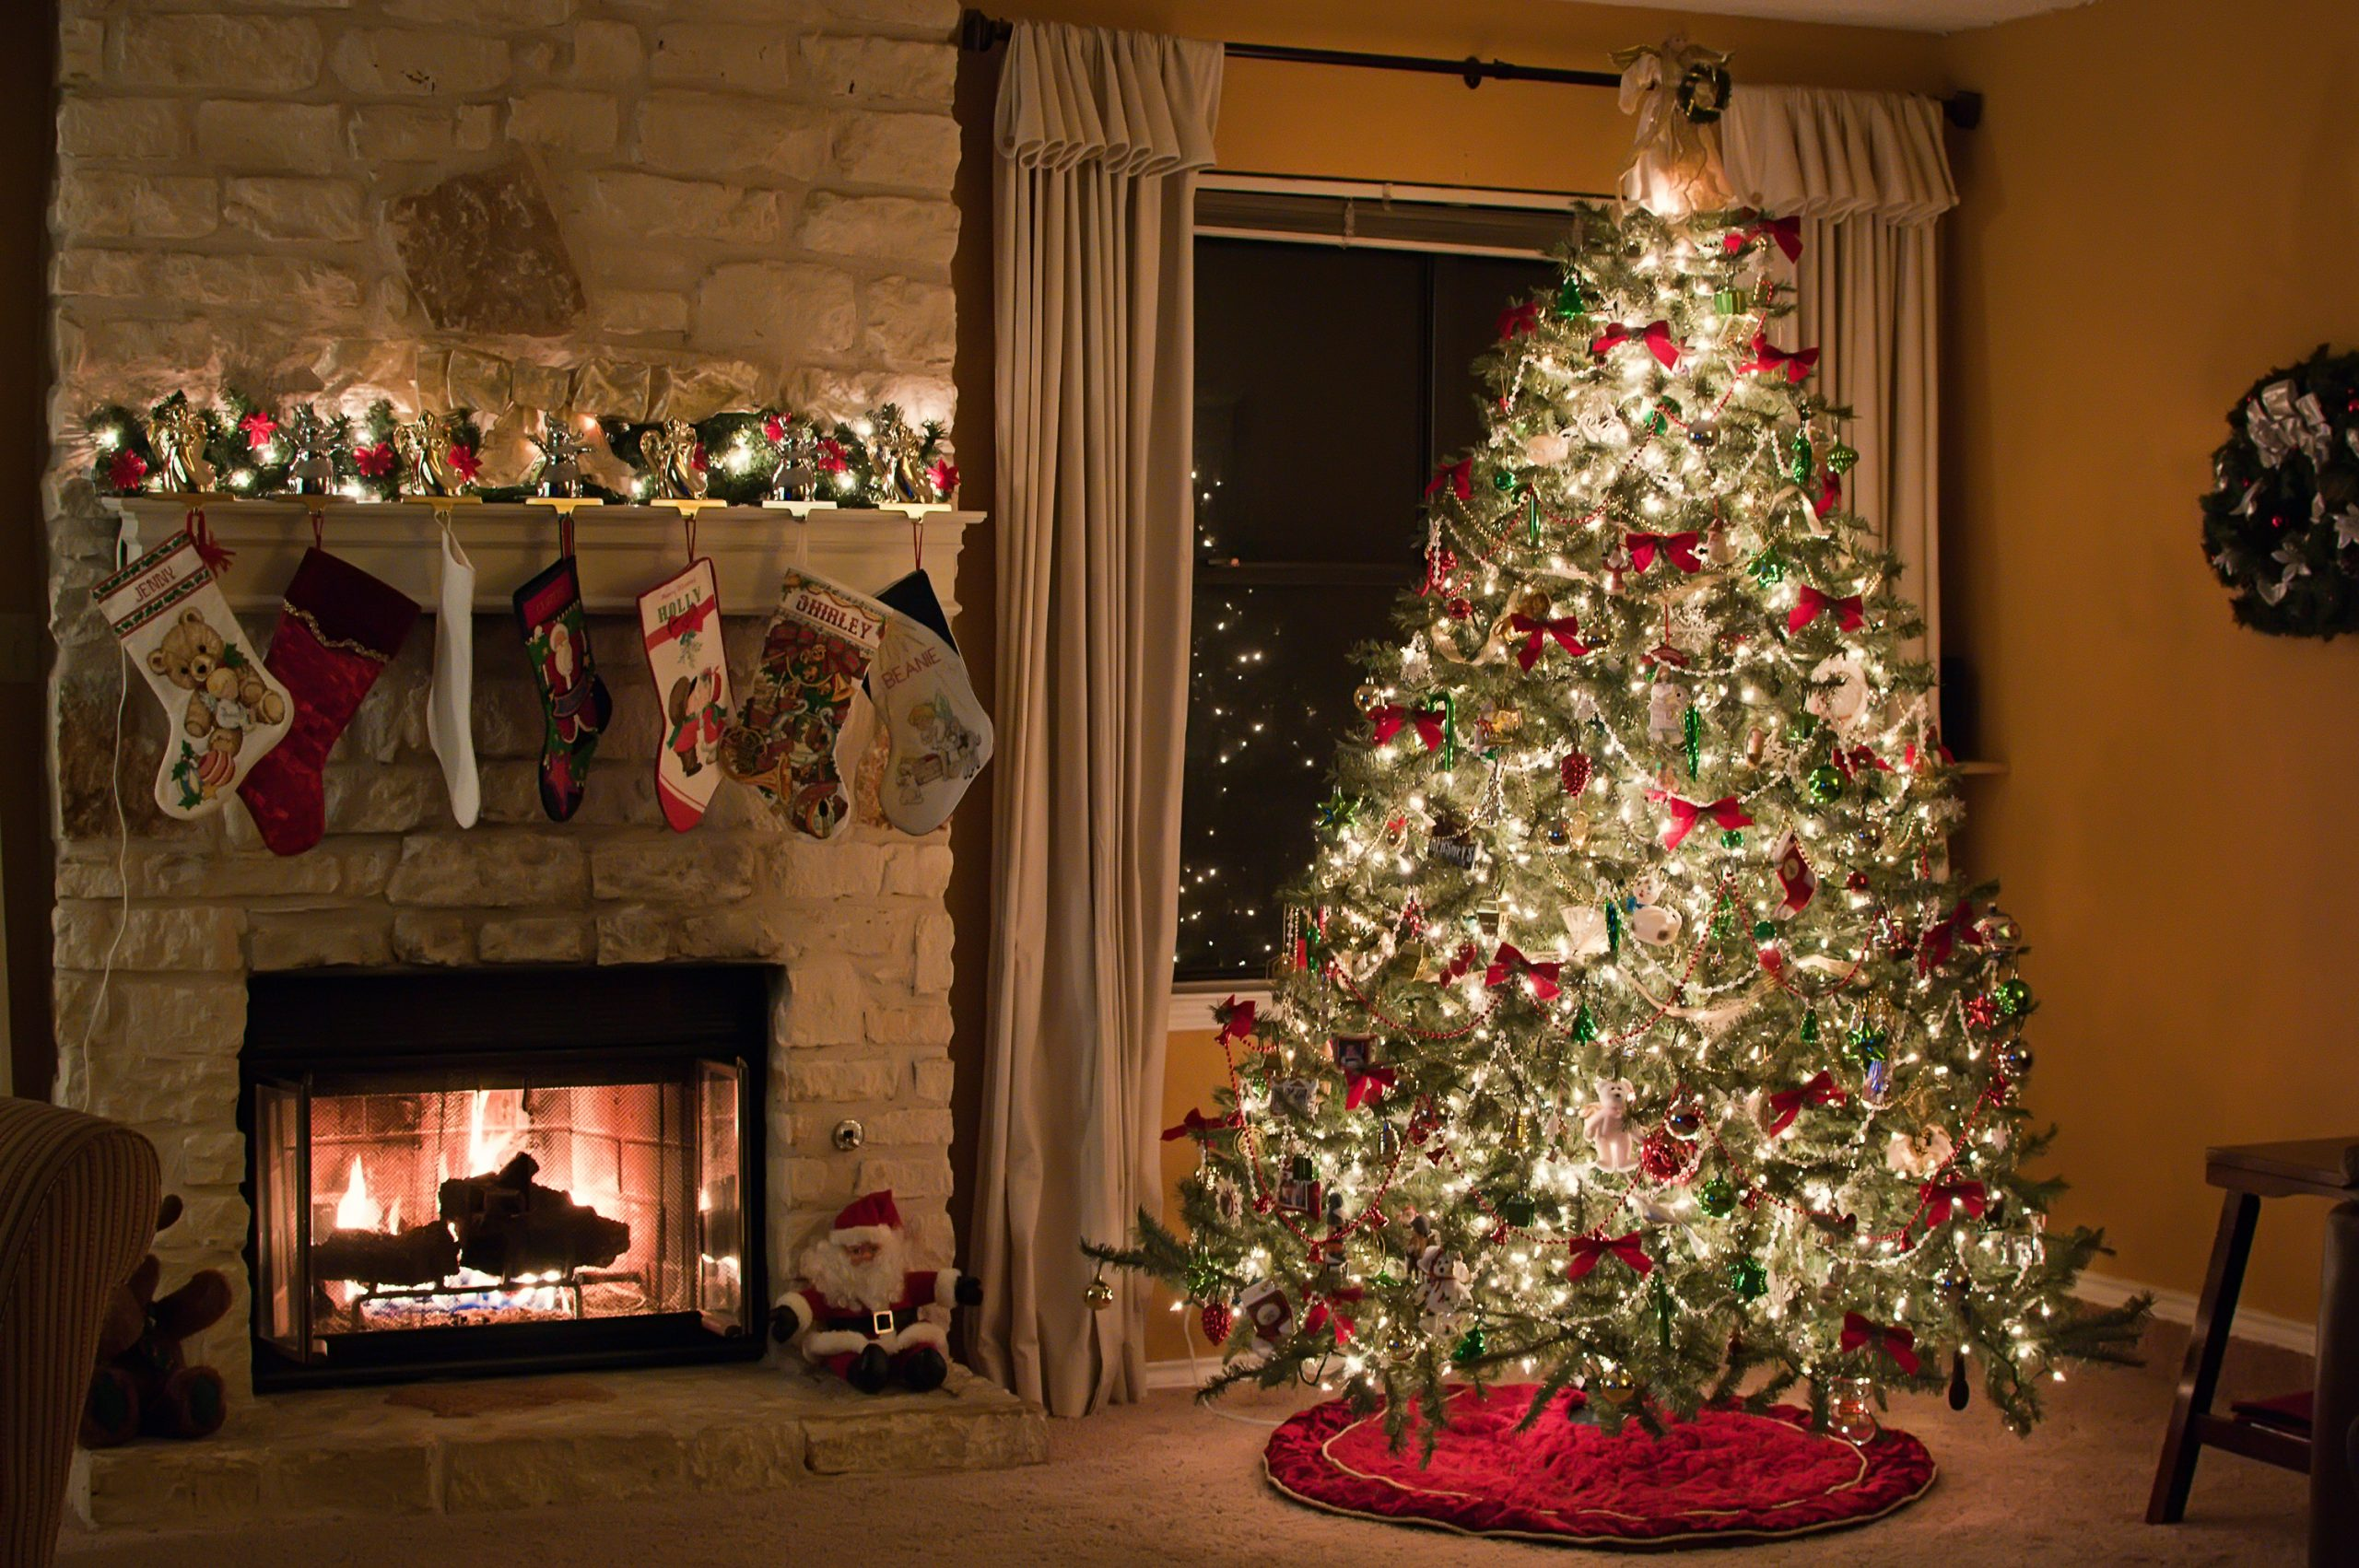 Best Artificial Christmas Trees To Set The Scene In Style This Festive Season